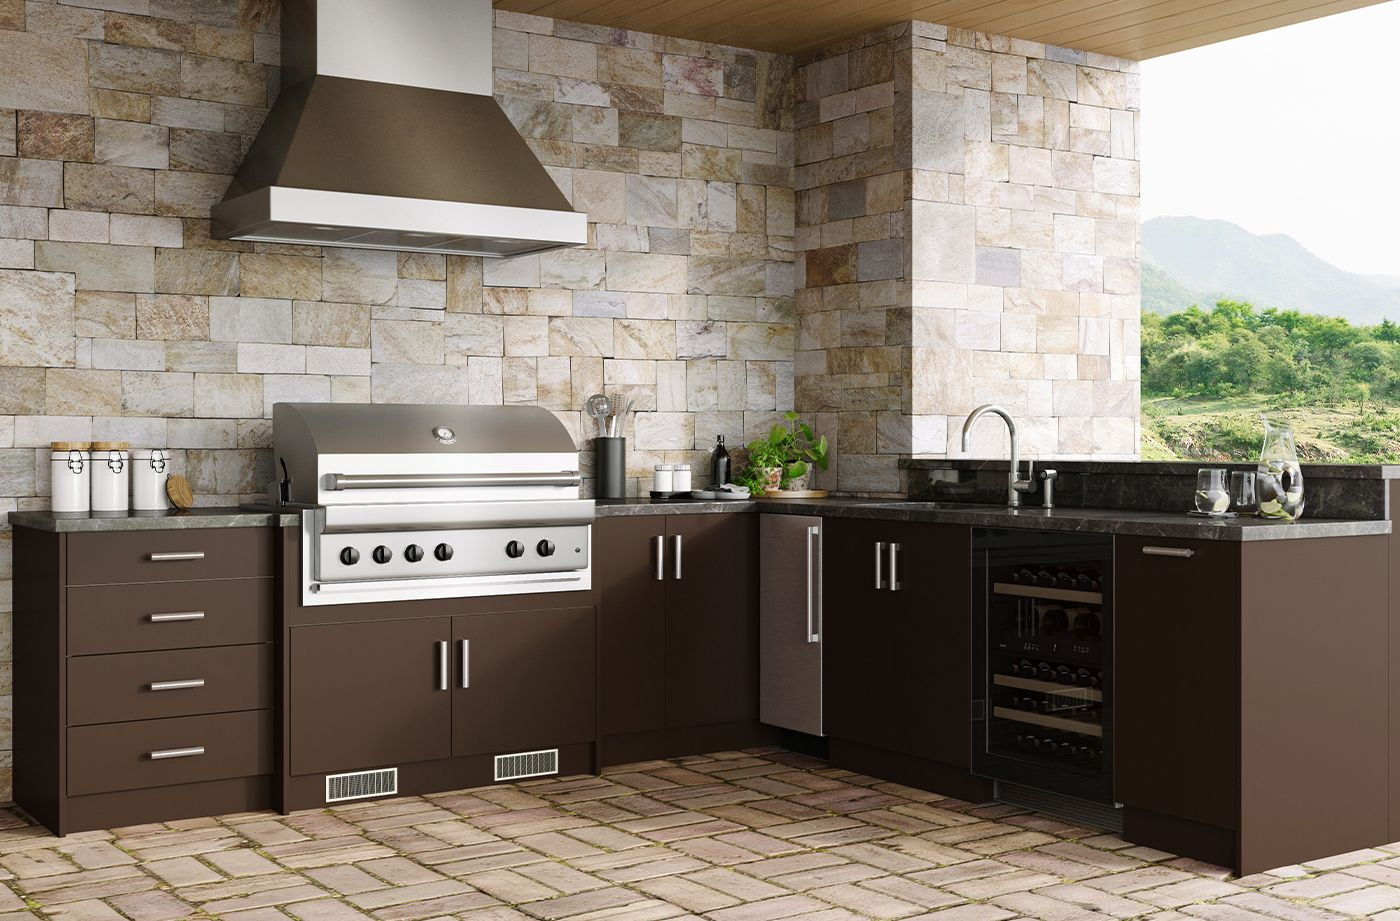 Costco Weatherstrong Outdoor Cabinetry In 2020 Cabinetry Outdoor Kitchen Kitchen Cabinets